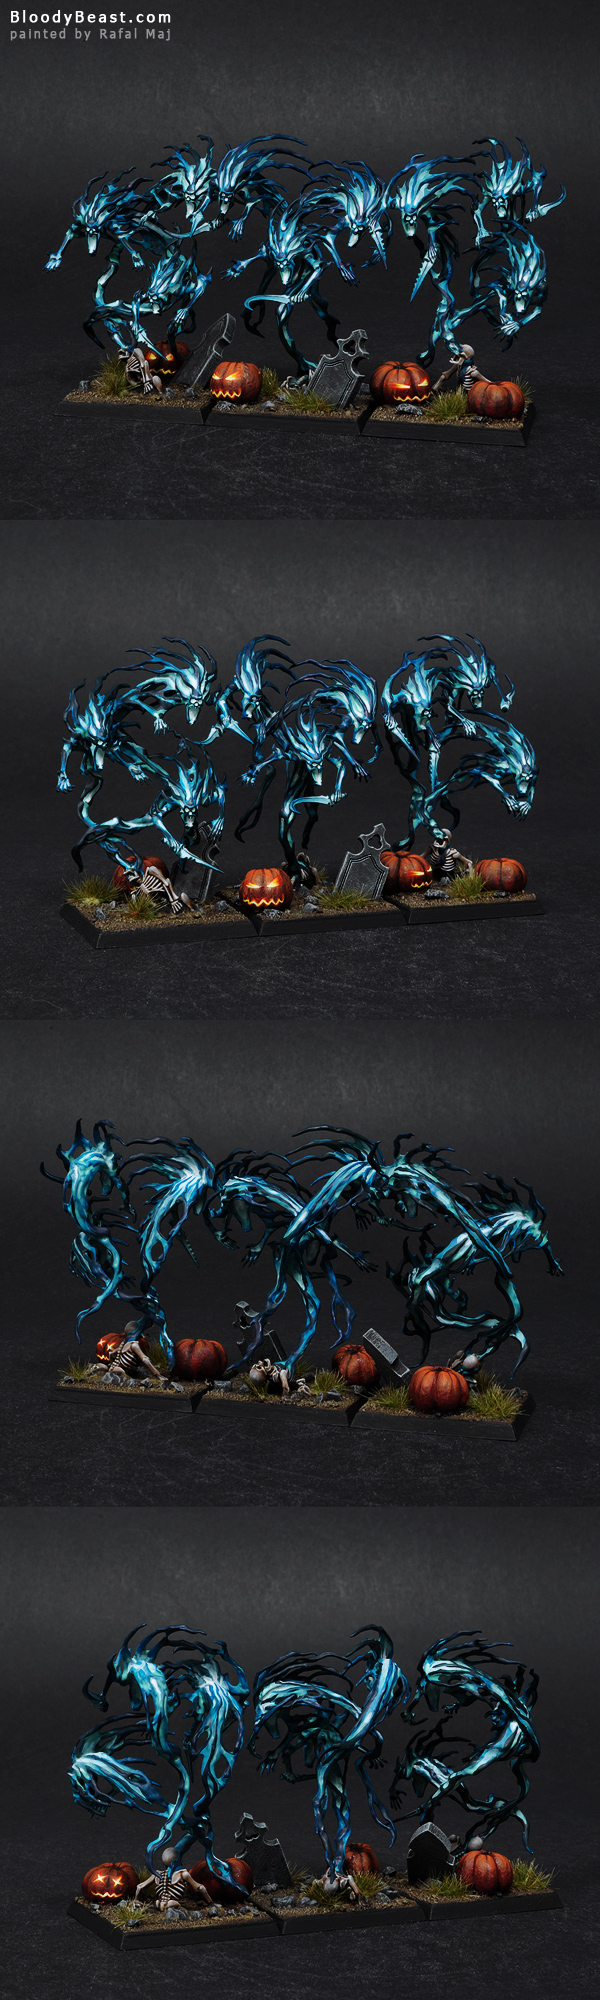 Halloween Spirit Hosts painted by Rafal Maj (BloodyBeast.com)